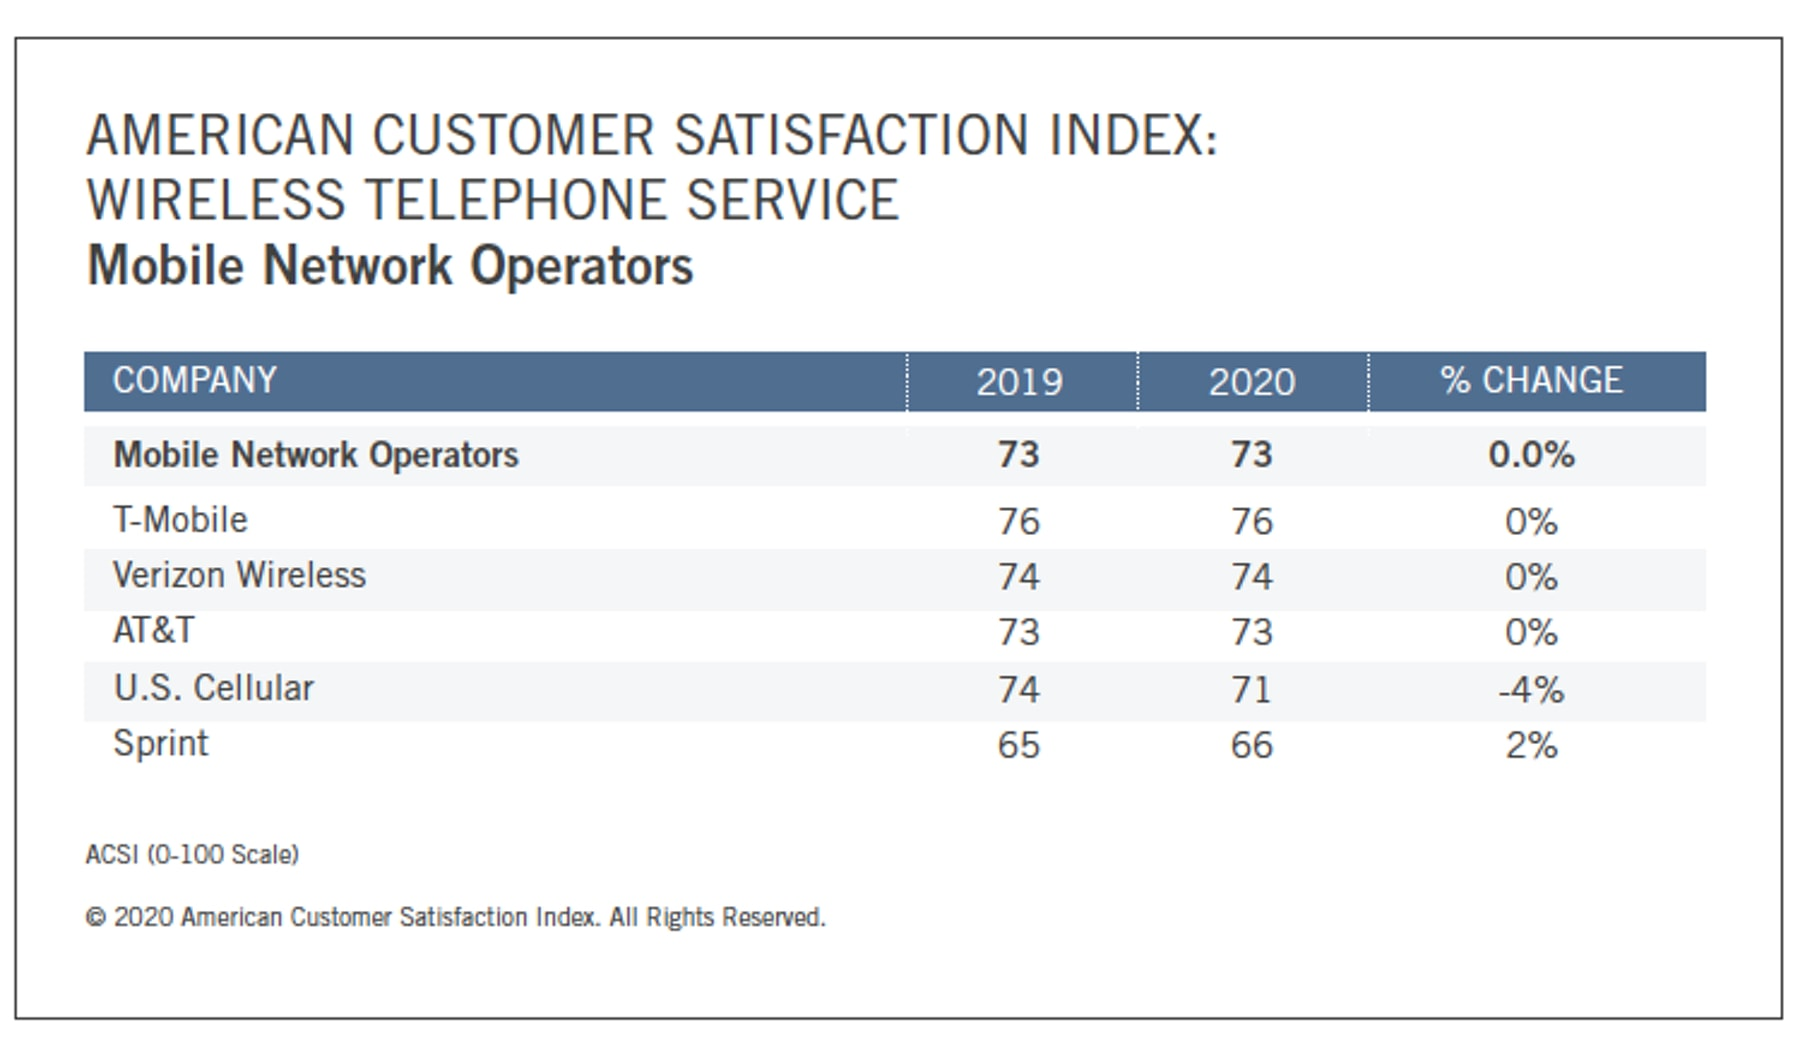 T-Mobile continues to dominate among consumers as the No. 1 mobile carrier in the U.S.